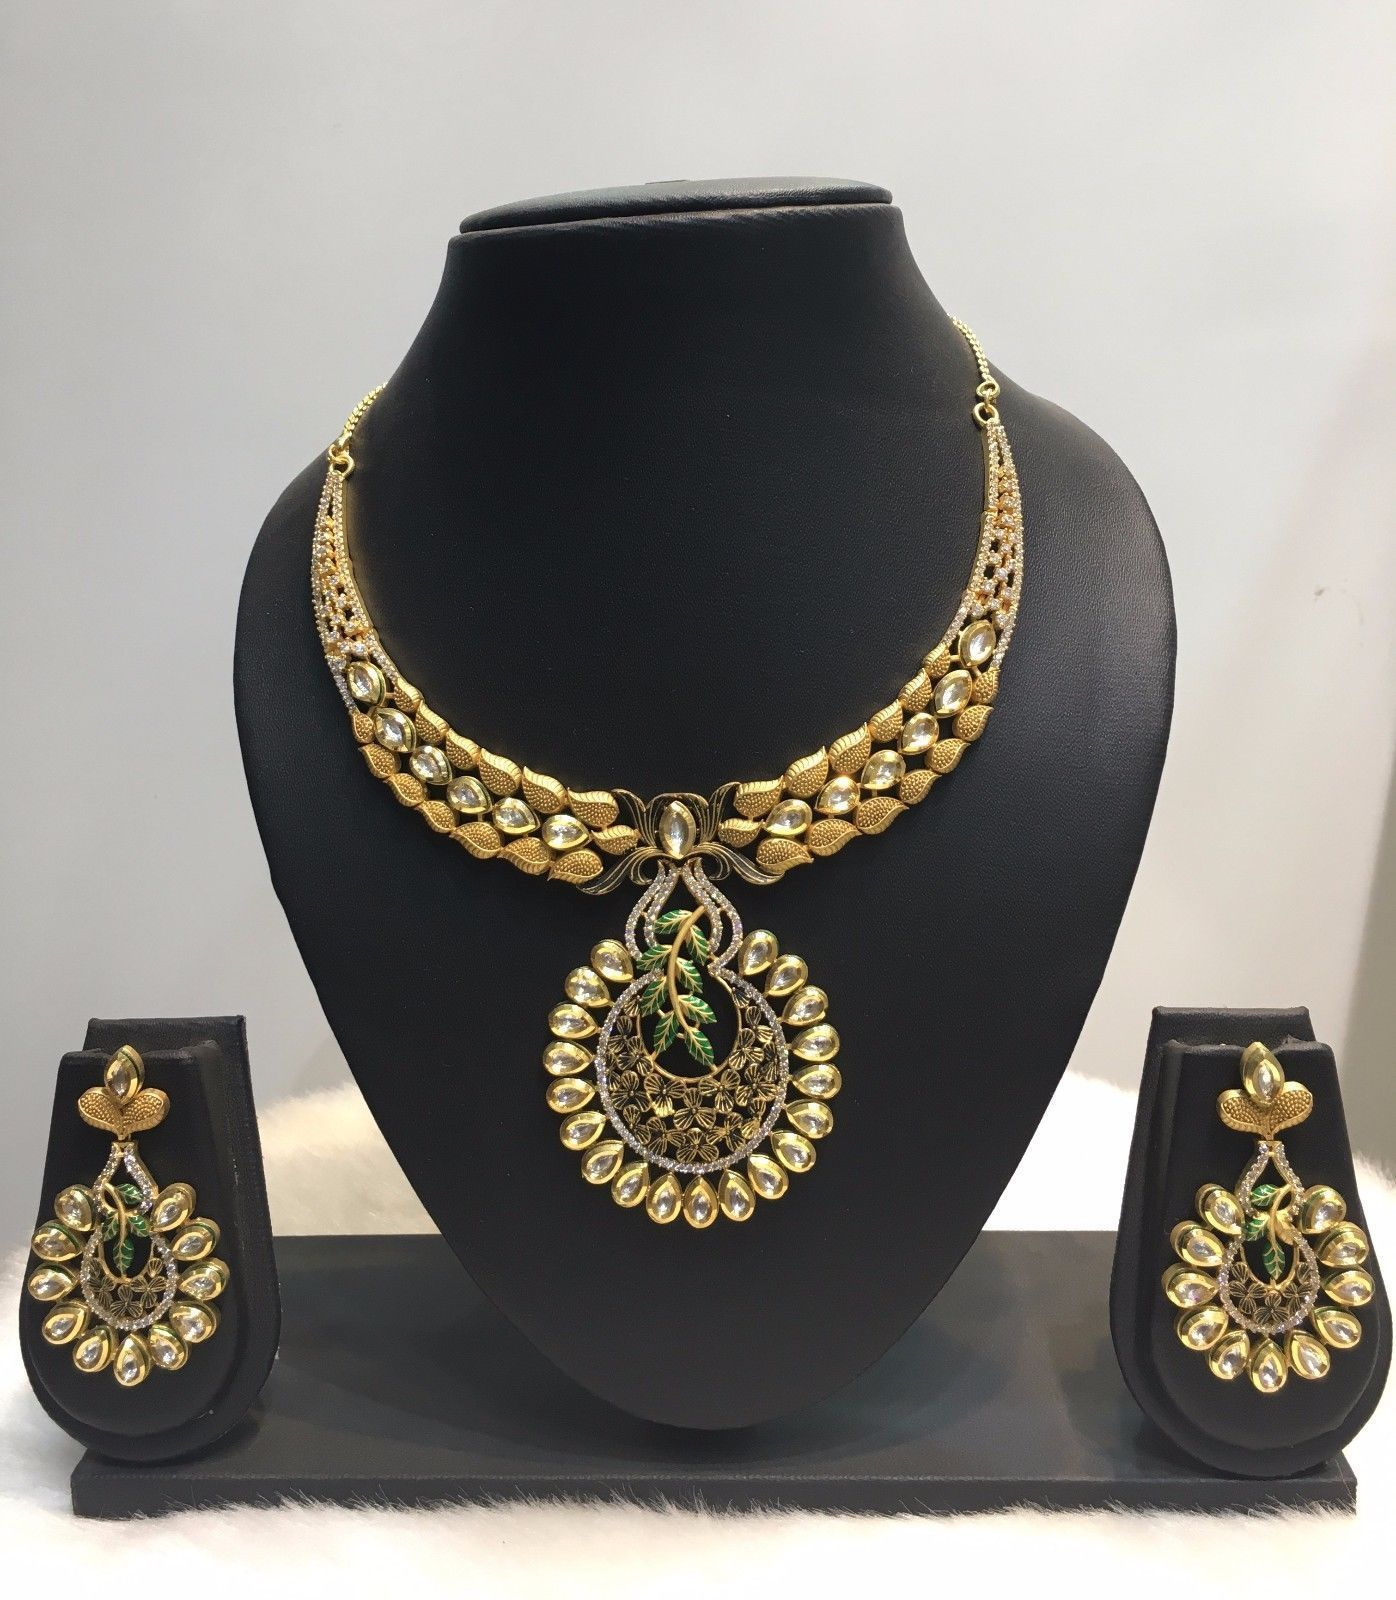 jewels jewellery by eva home oxidised shop wholesale fashion jhumka enameled maya necklaces l jewelry indian